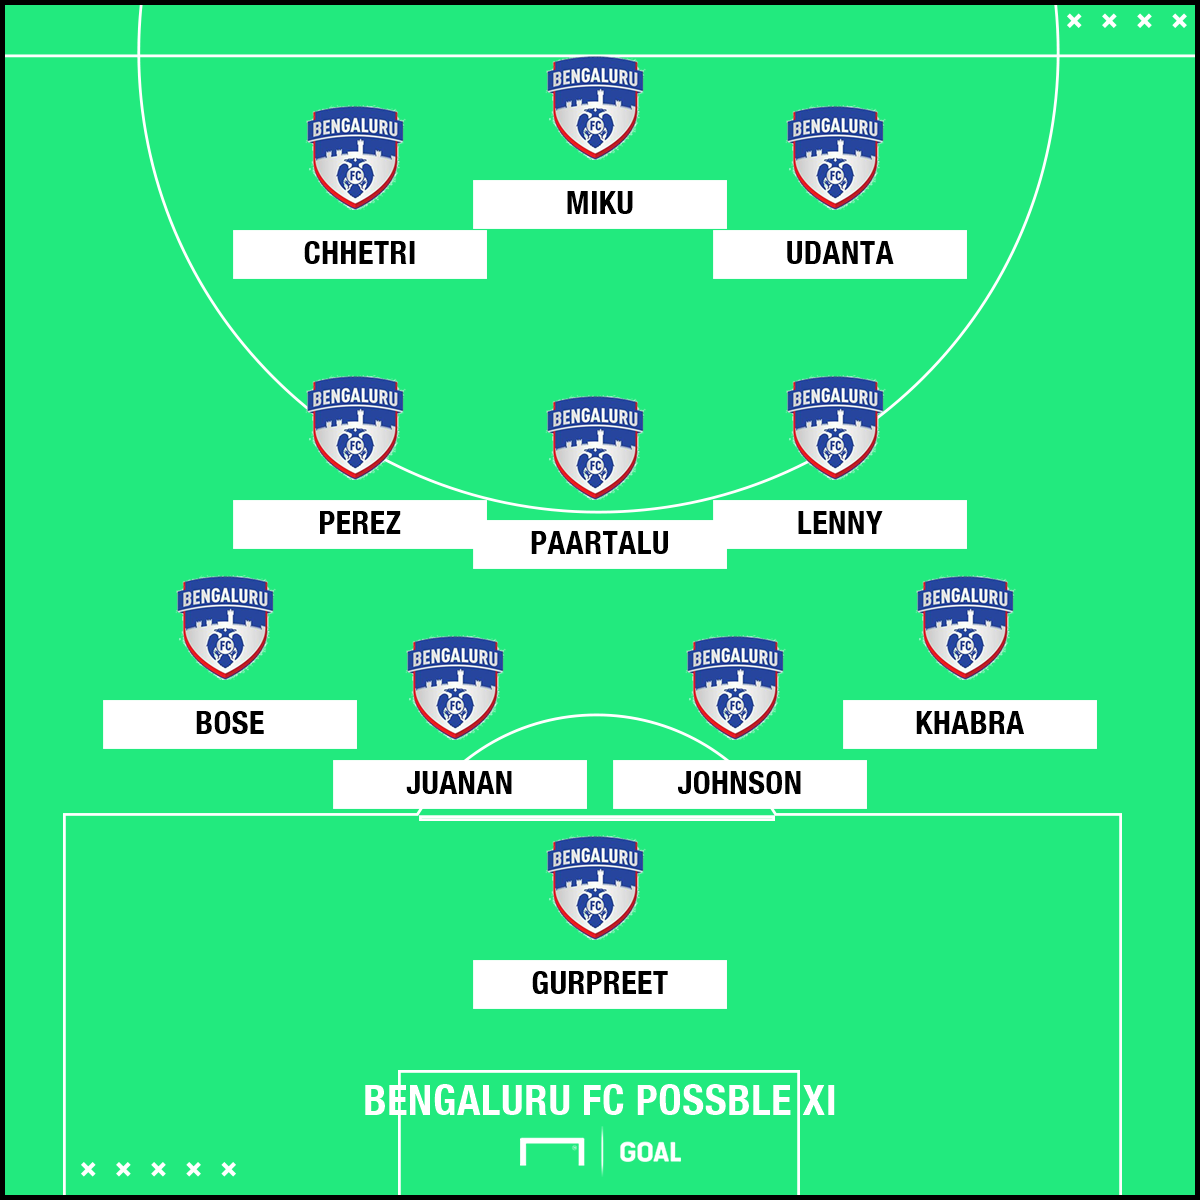 Bengaluru FC Possible XI